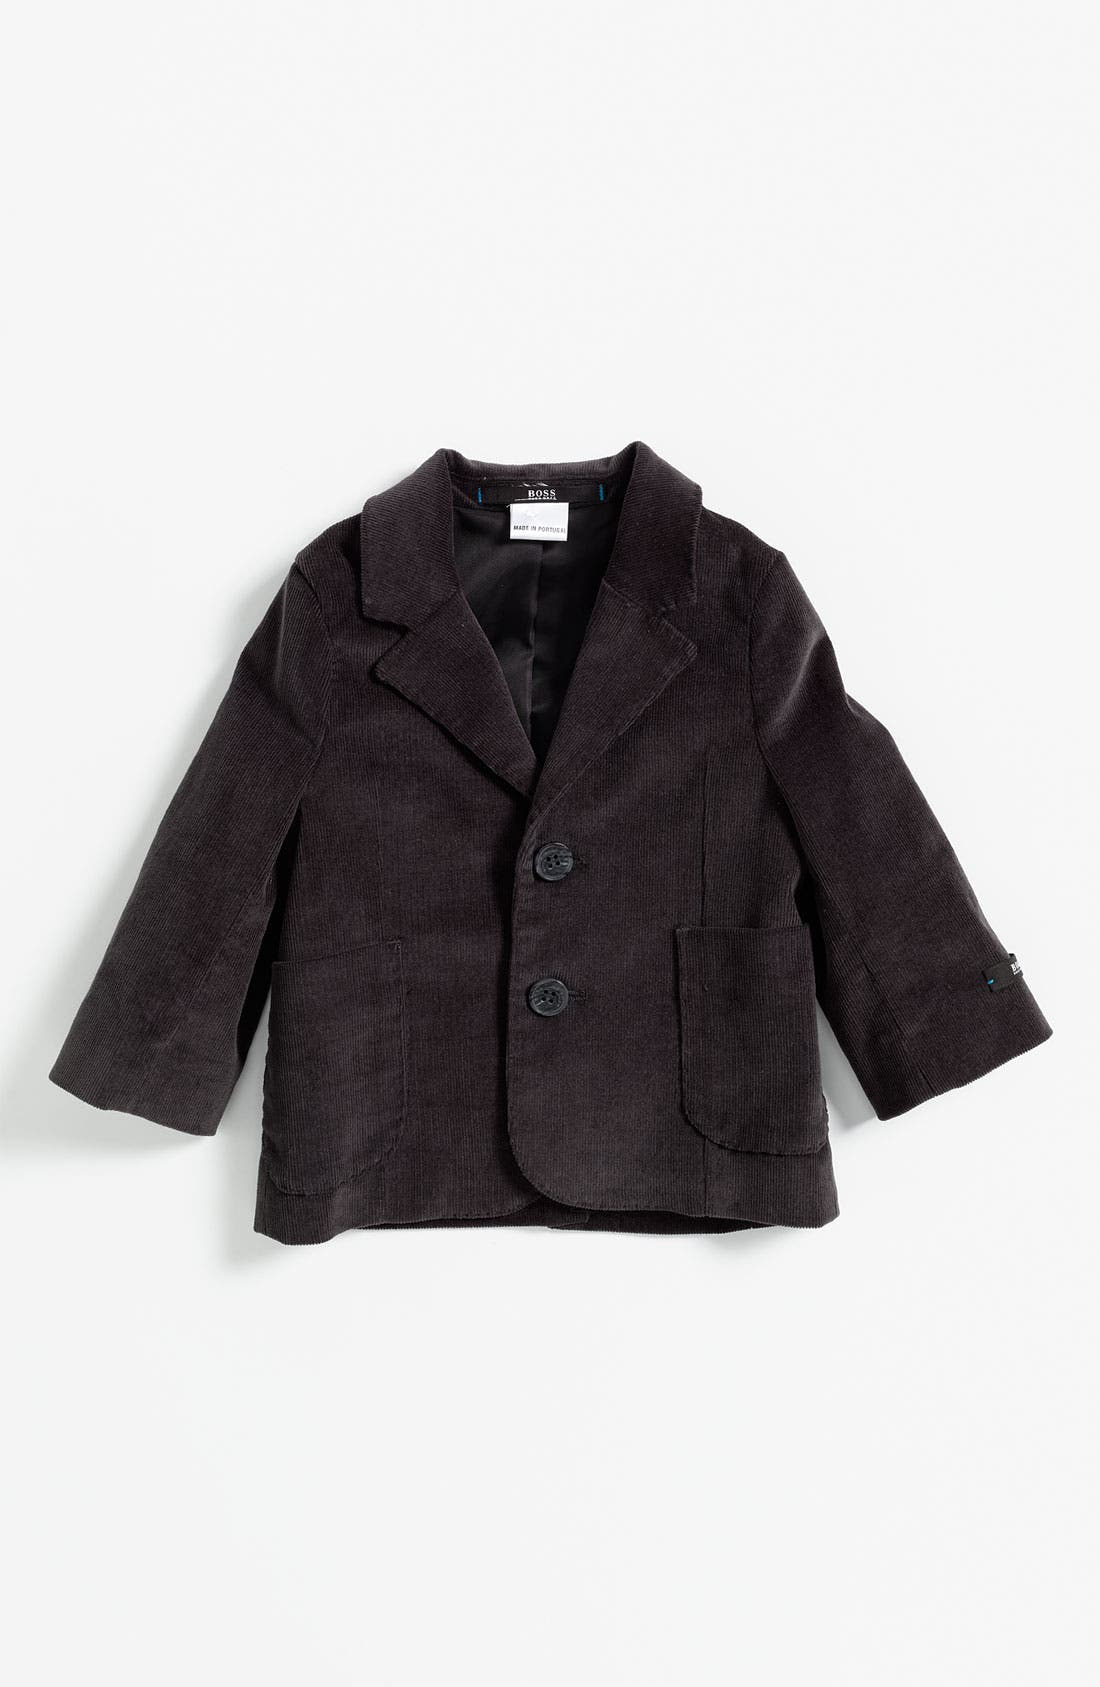 Main Image - BOSS Kidswear Velvet Jacket (Toddler)